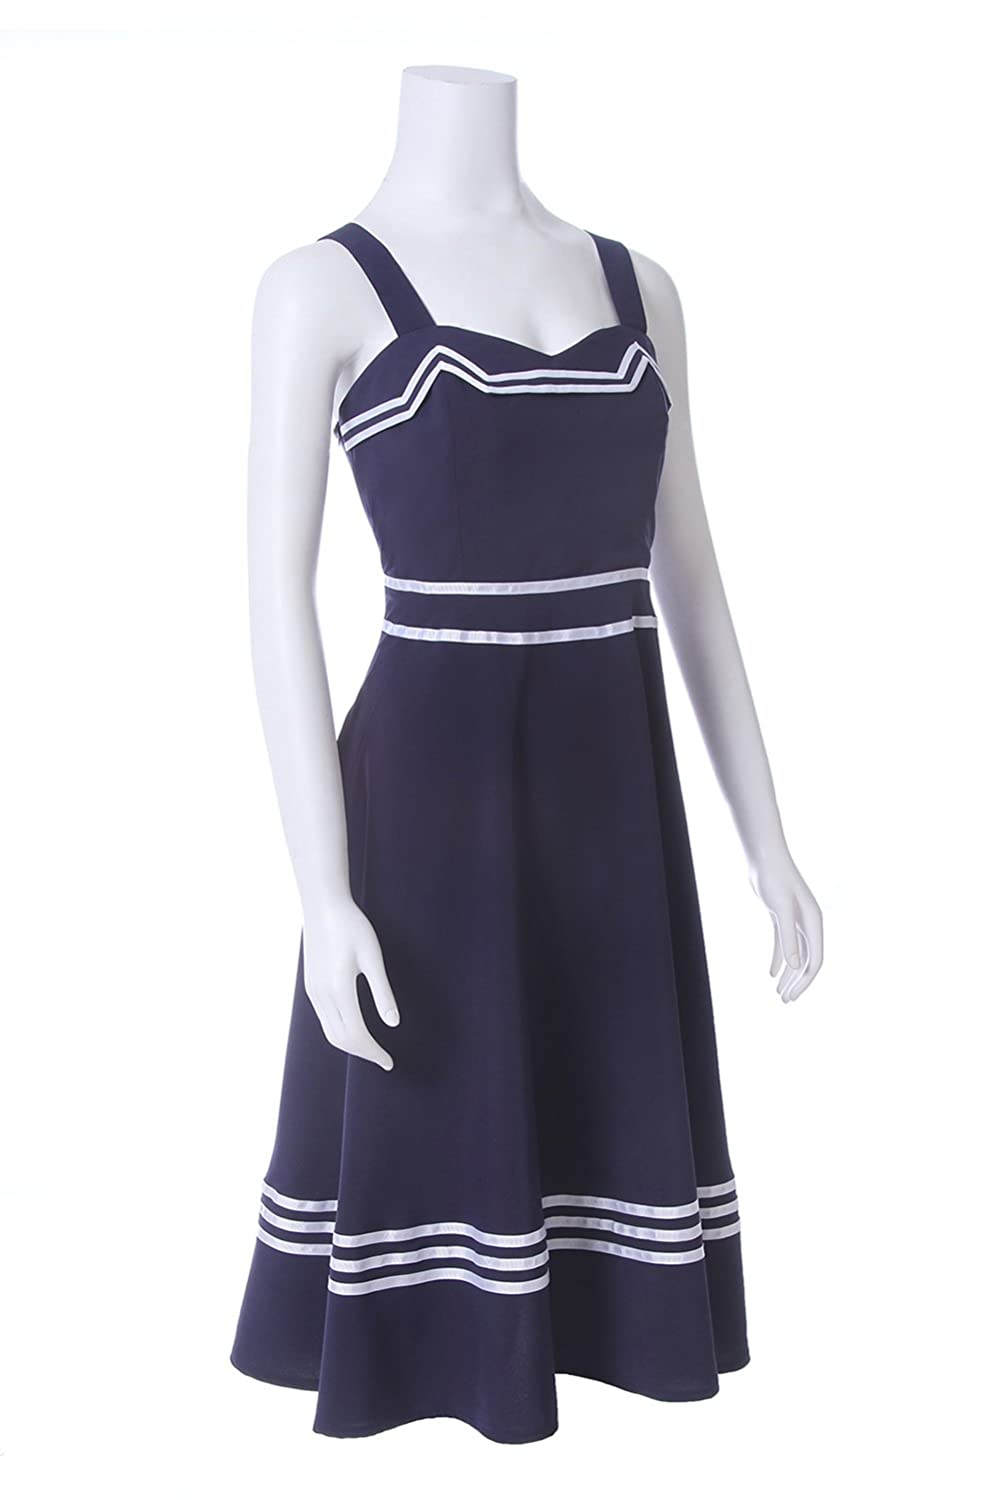 ROLECOS Womens Sailor Dress 1950s Rockabilly Vestido Cocktail Party Dresses Navy Blue at Amazon Womens Clothing store: